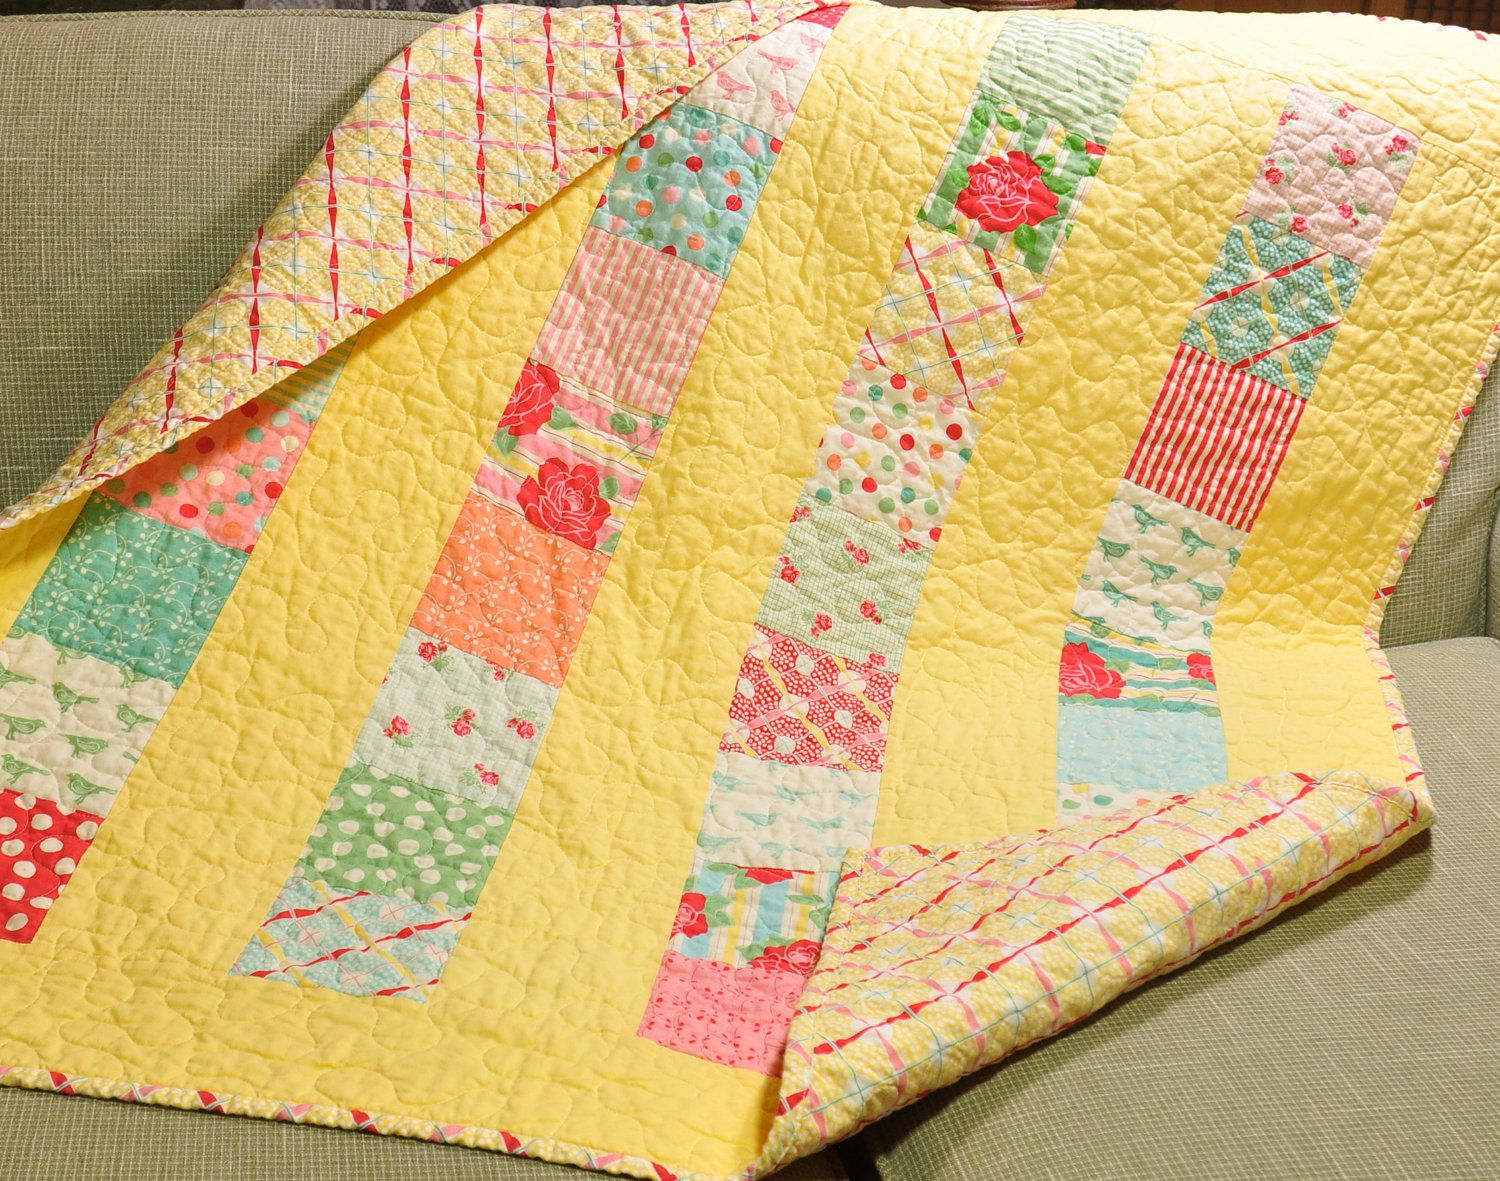 Baby crib quilts - Girl Quilt Baby Crib Sweet By Moda Baby Crib Quilt Girl Blanket 30s Style Fabric